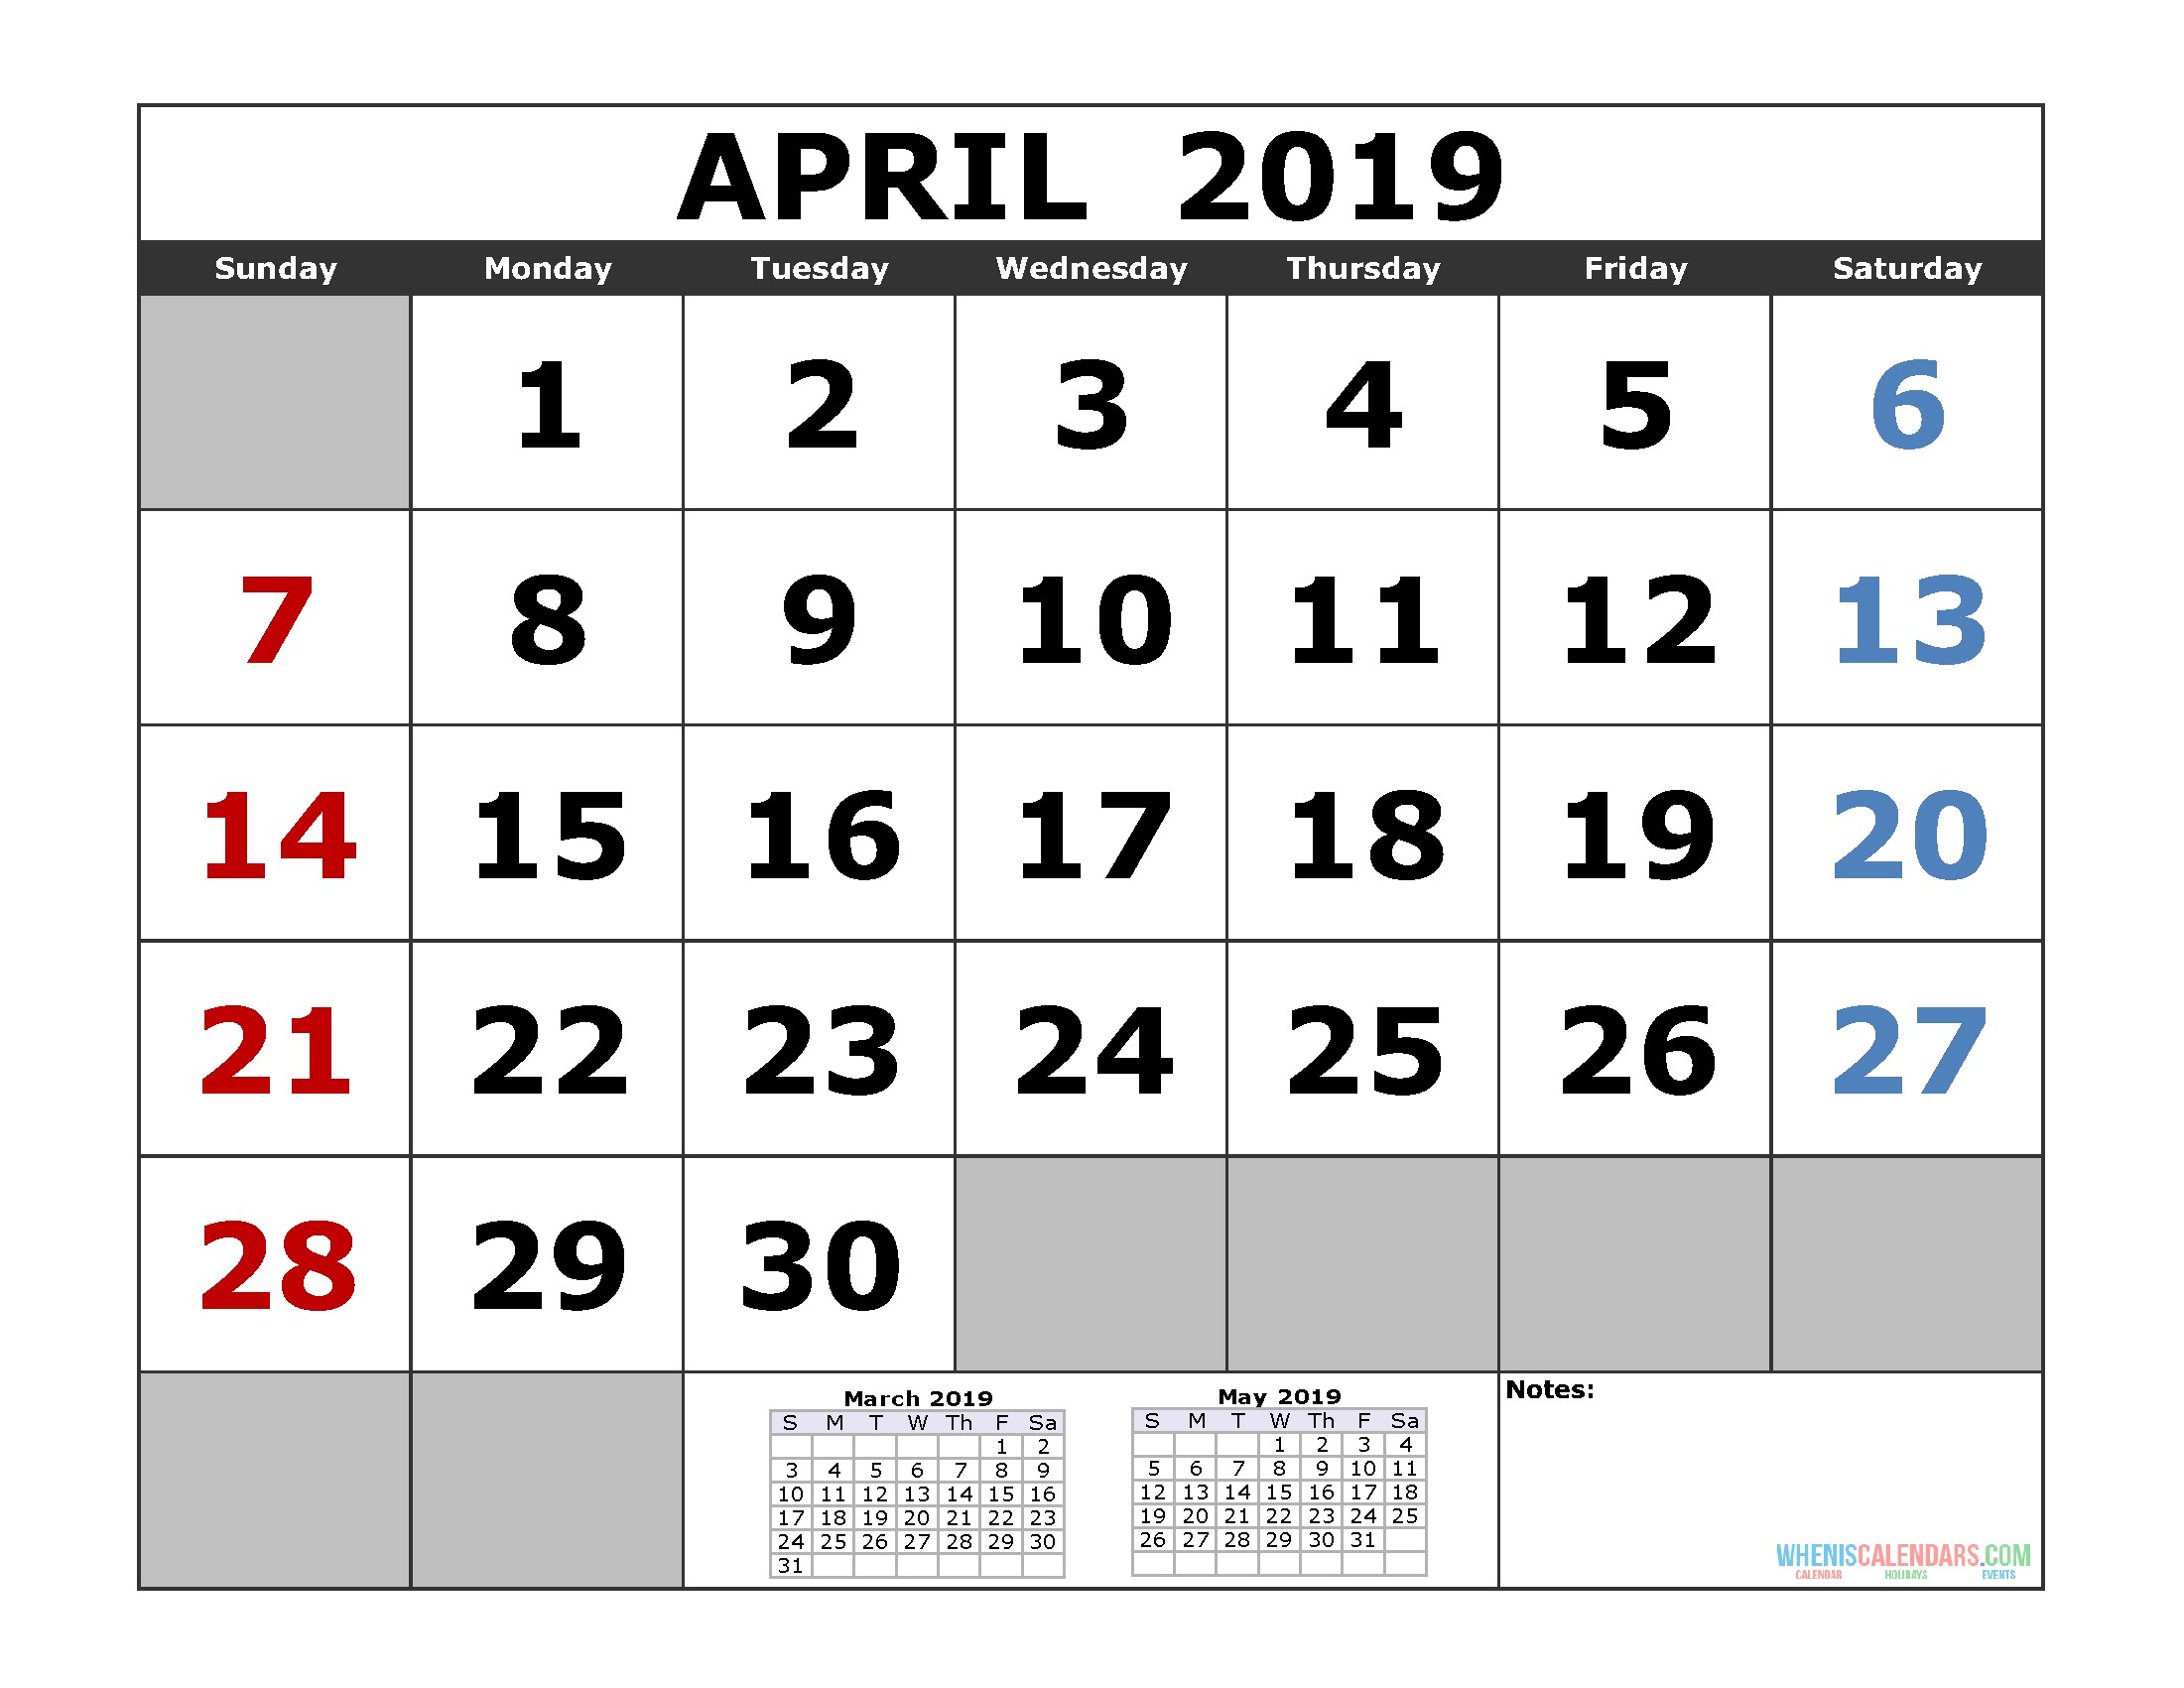 Empty Calendar March 2019 Mejores Y Más Novedosos 3 Month Calendar Template 2019 Of Empty Calendar March 2019 Más Recientemente Liberado 10 Stylish Free Printable Calendars for 2019